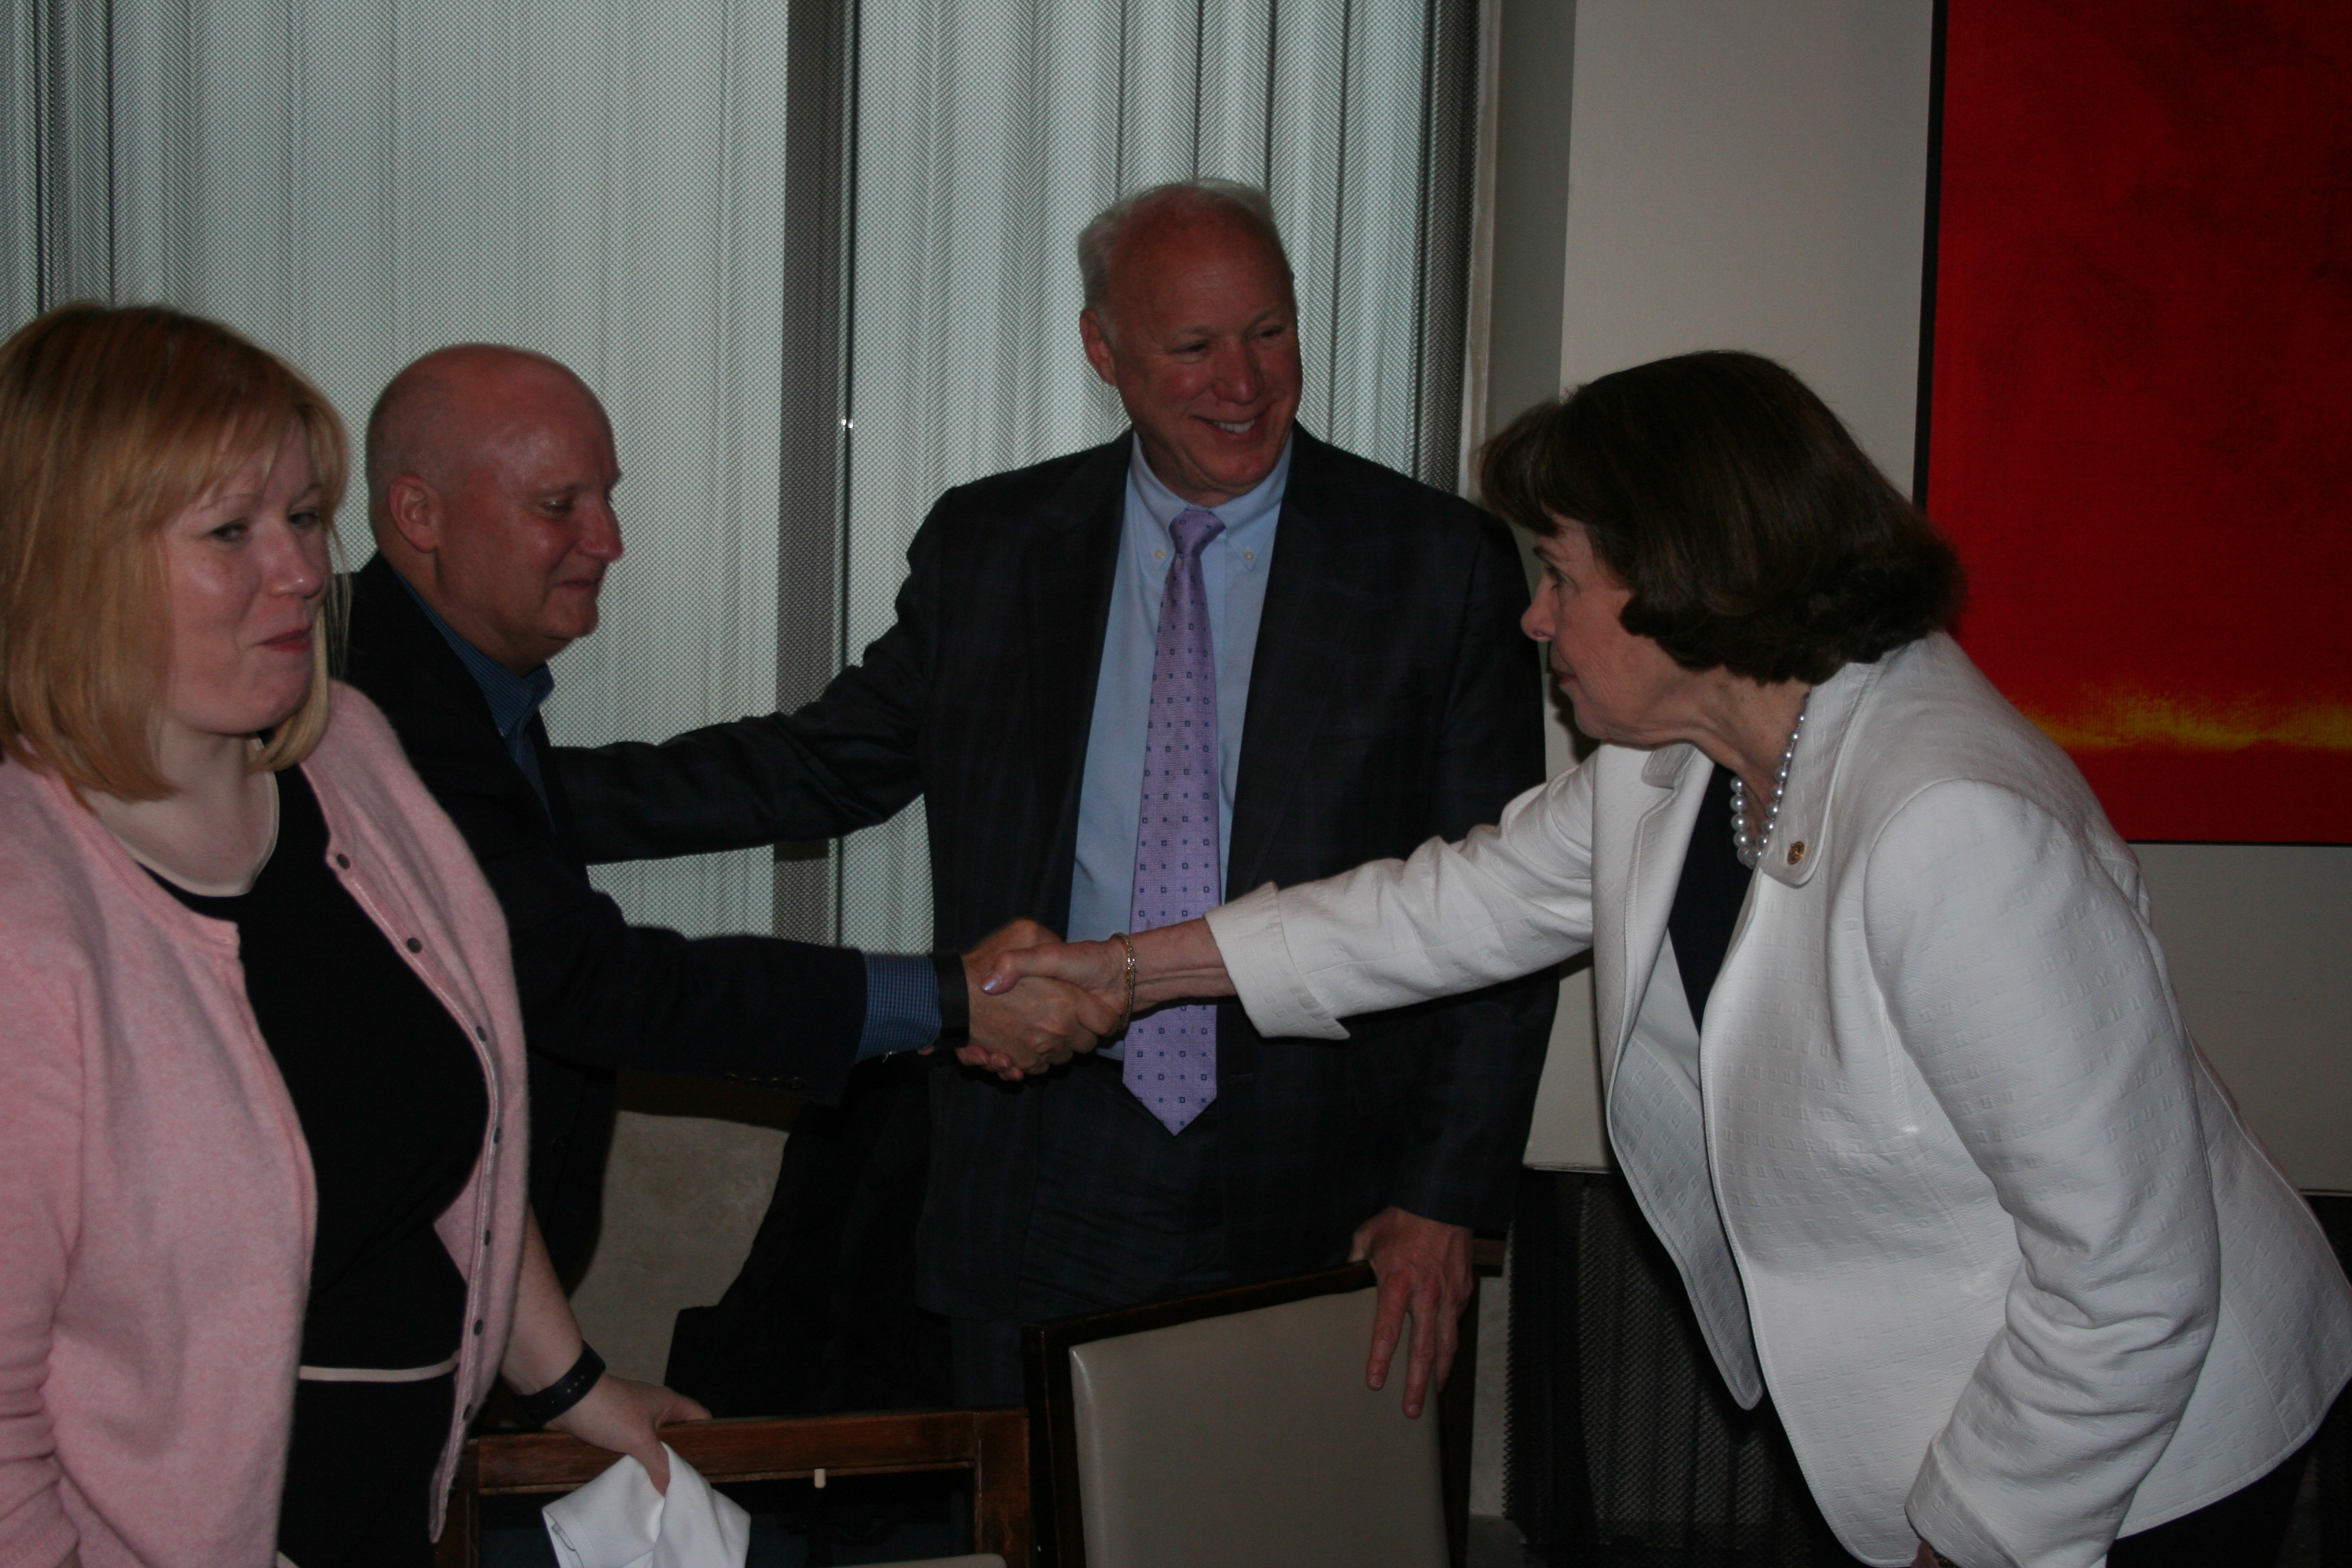 Sen. Dianne Feinstein, then the ranking member of the Senate Intelligence Committee, shakes the hand of board member JR Williamson, Northrop Grumman Corporate Chief Information Officer